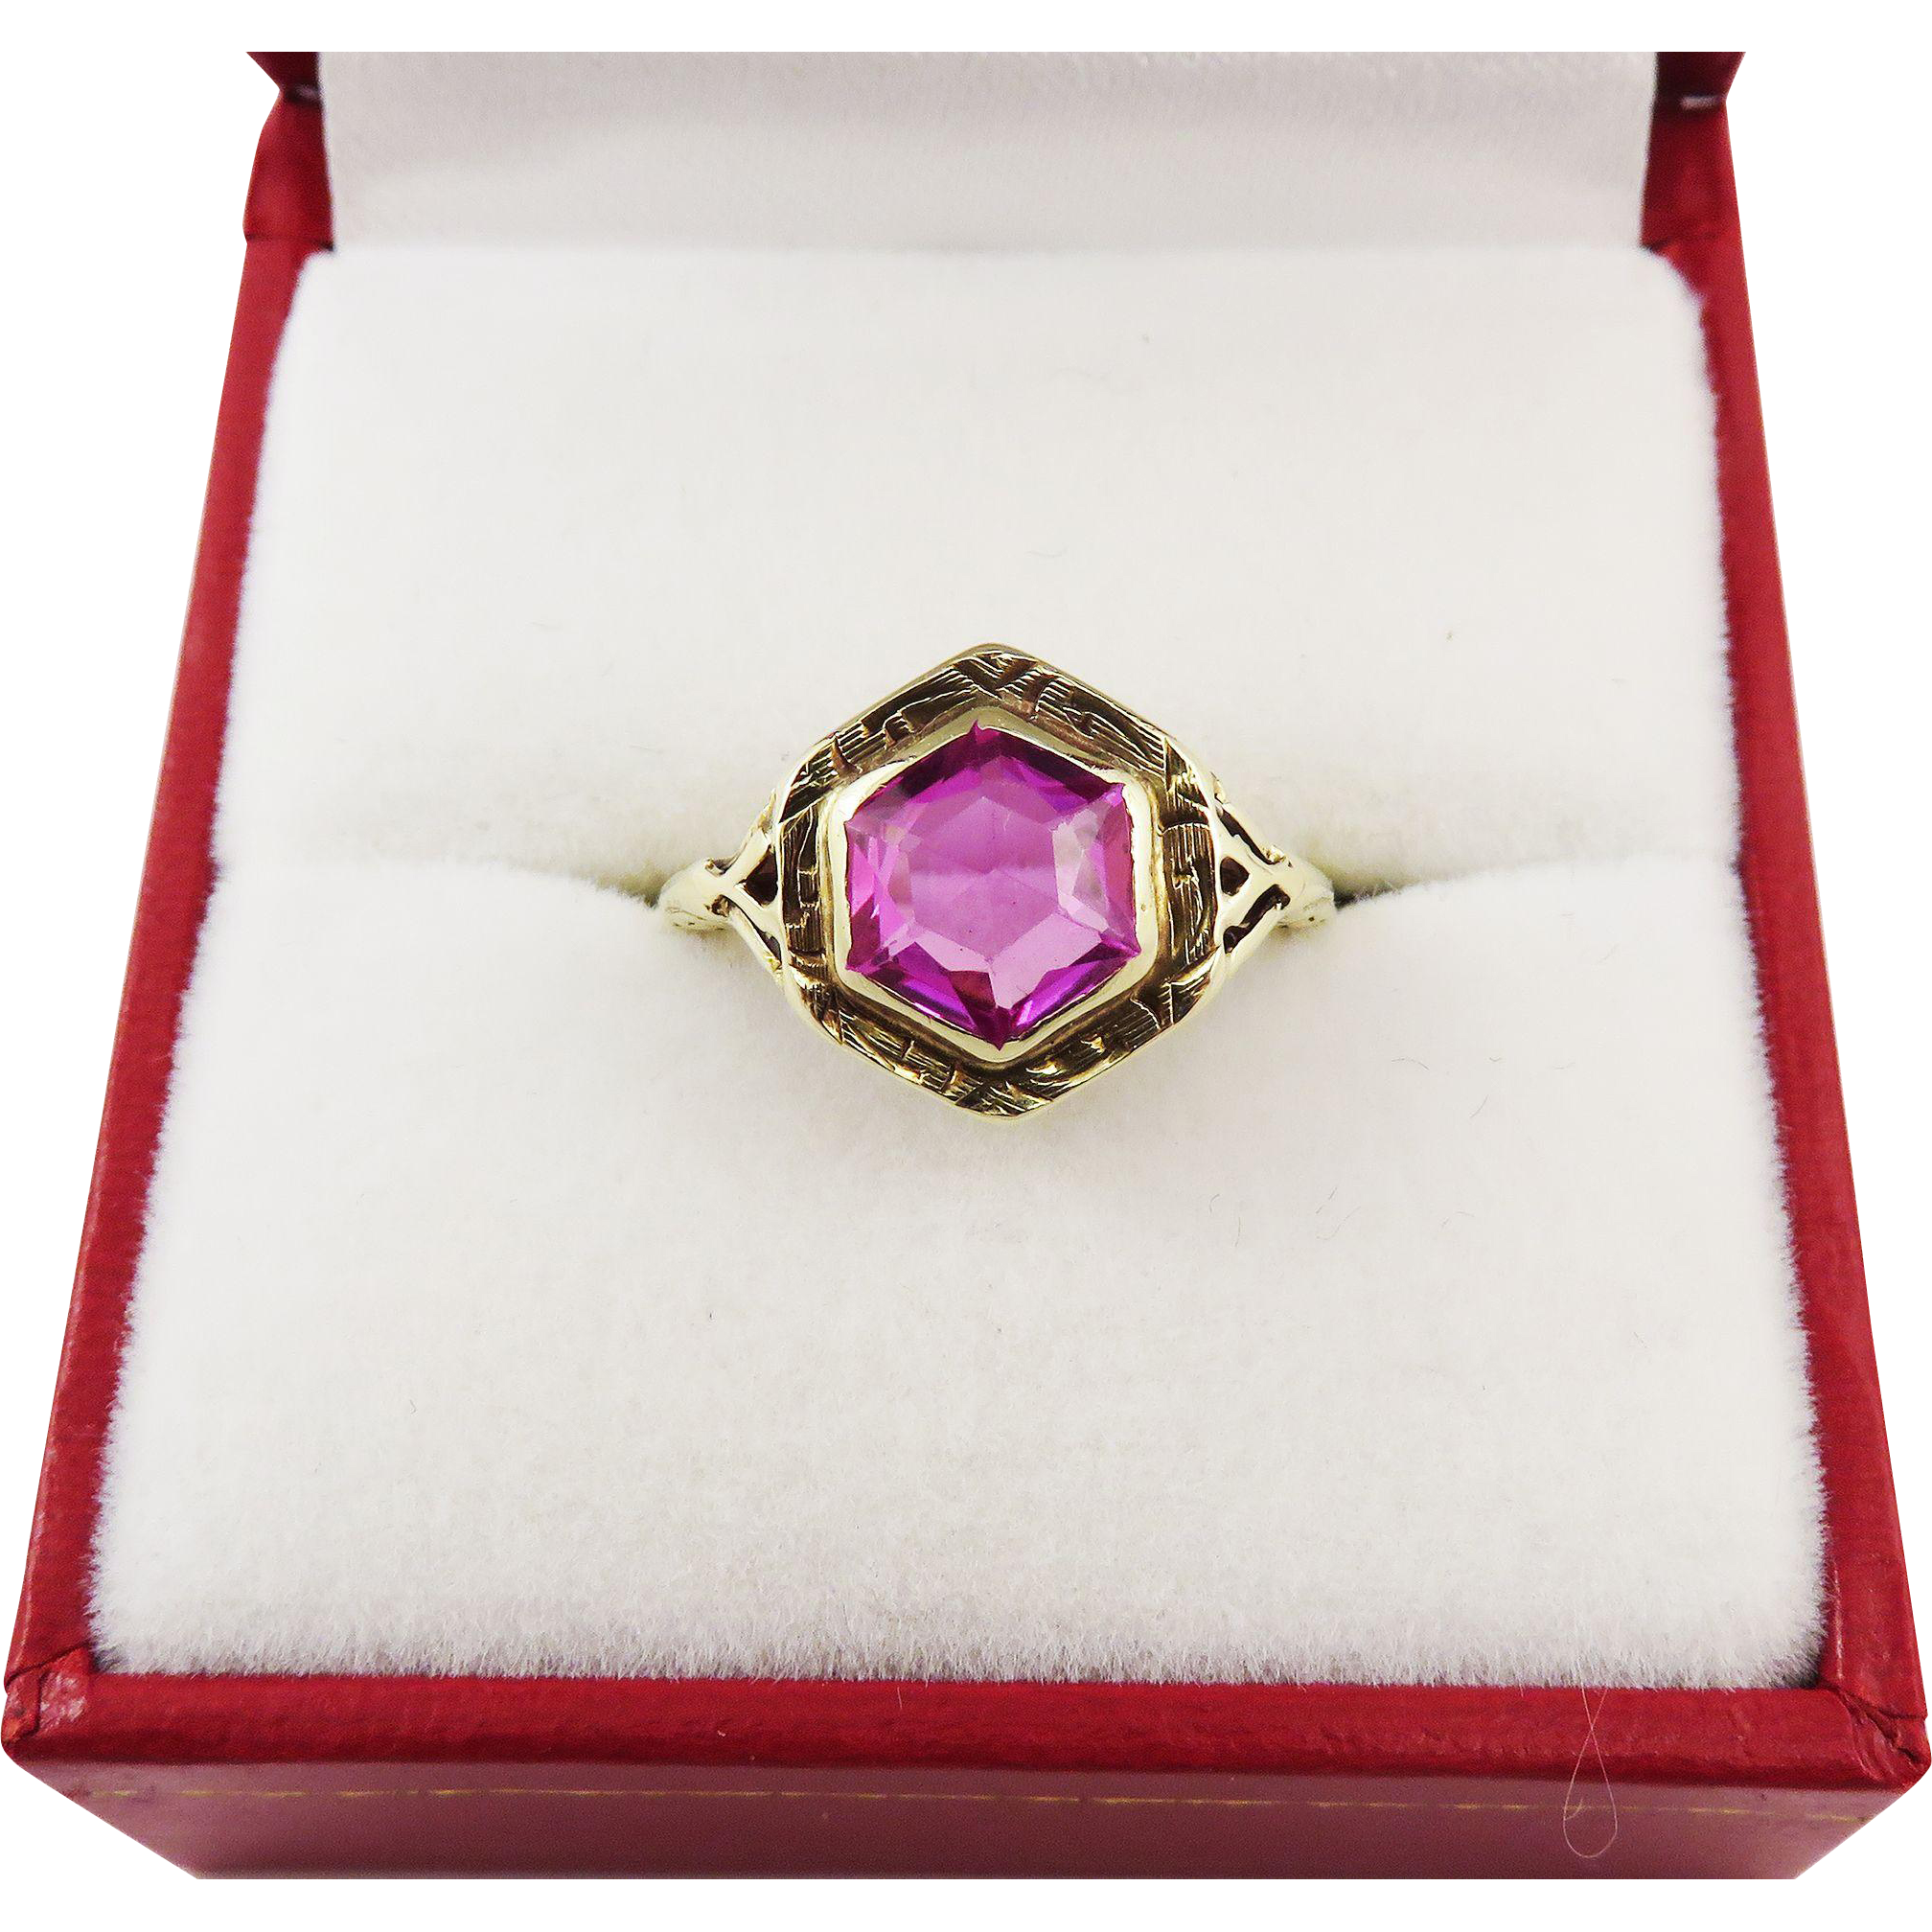 JAZZ AGE Art Deco 2 1/2 Ct. Pink Lab Sapphire Solitaire/14k Ring, c.1925!